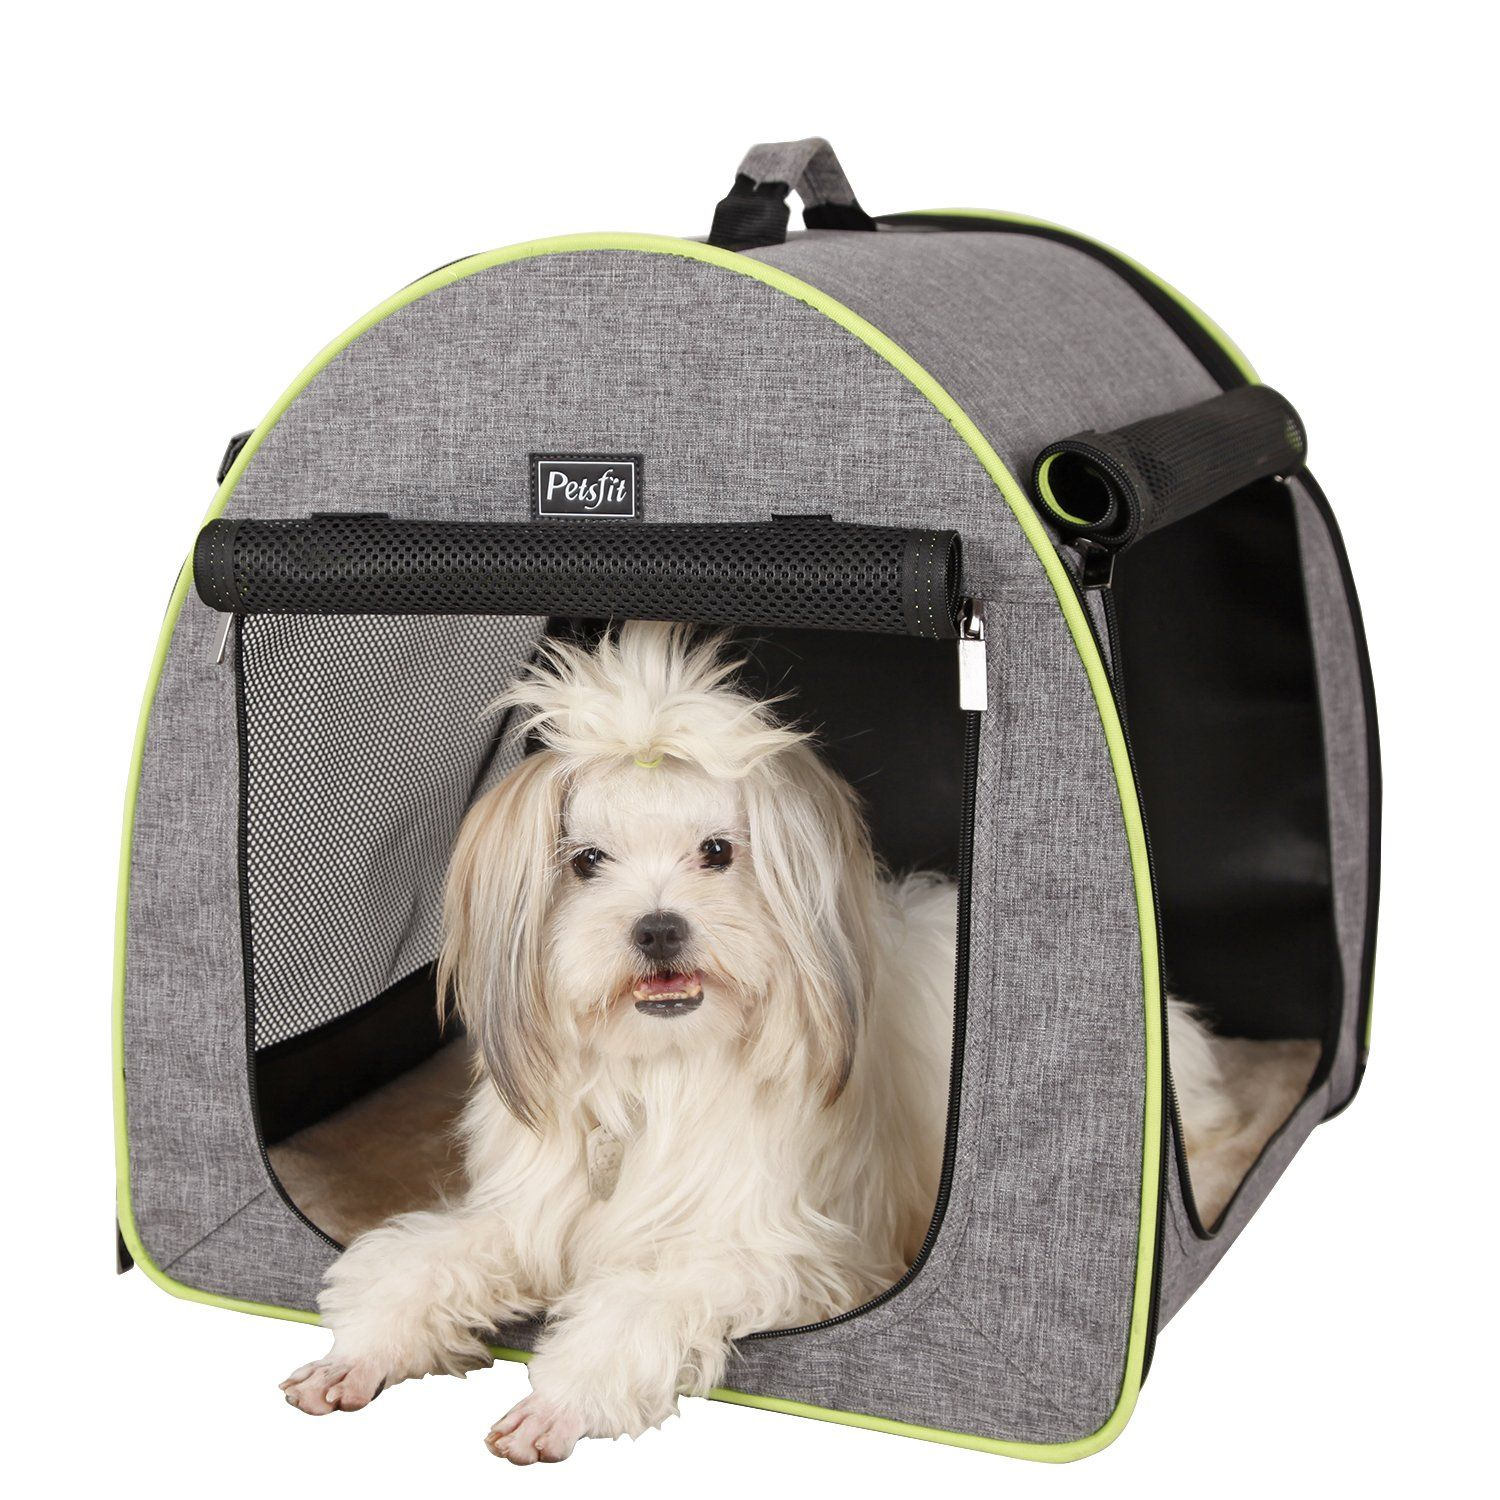 Petsfit Soft Portable Dog Crate Cat Crate Foldable Pet Kennel